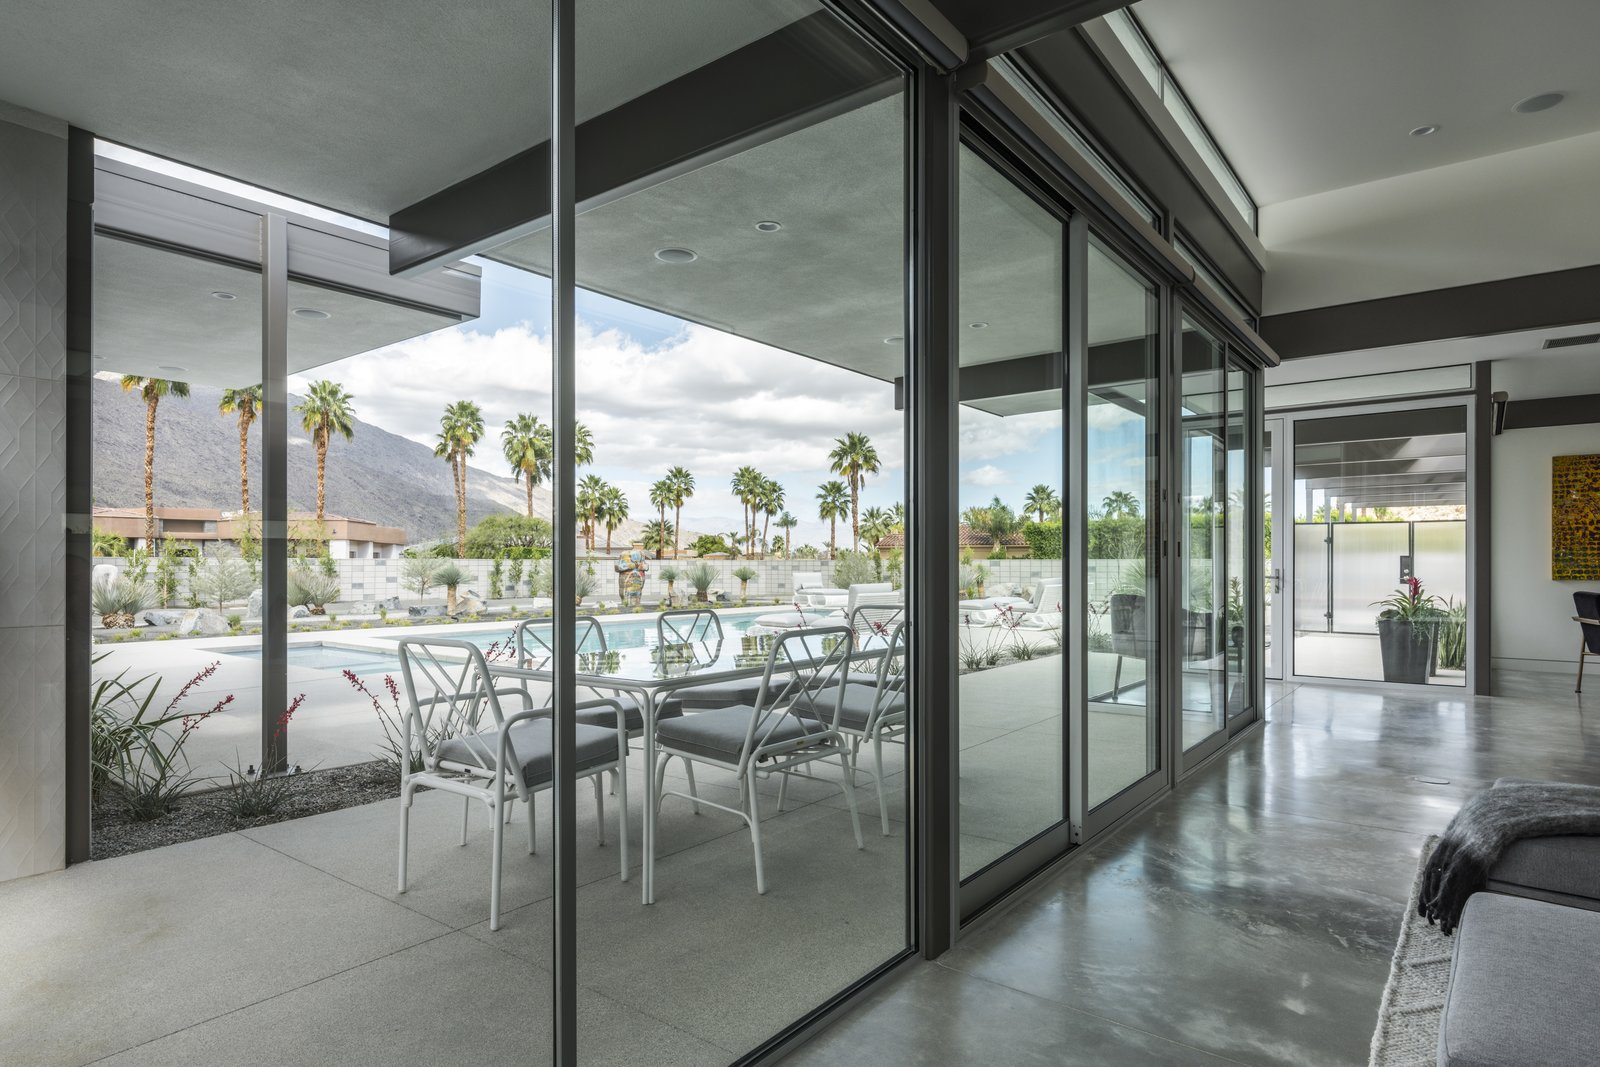 Living spaces are provided not only on the interior, but the exterior as wall.  Large overhangs provide some protection while in the outdoor elements.